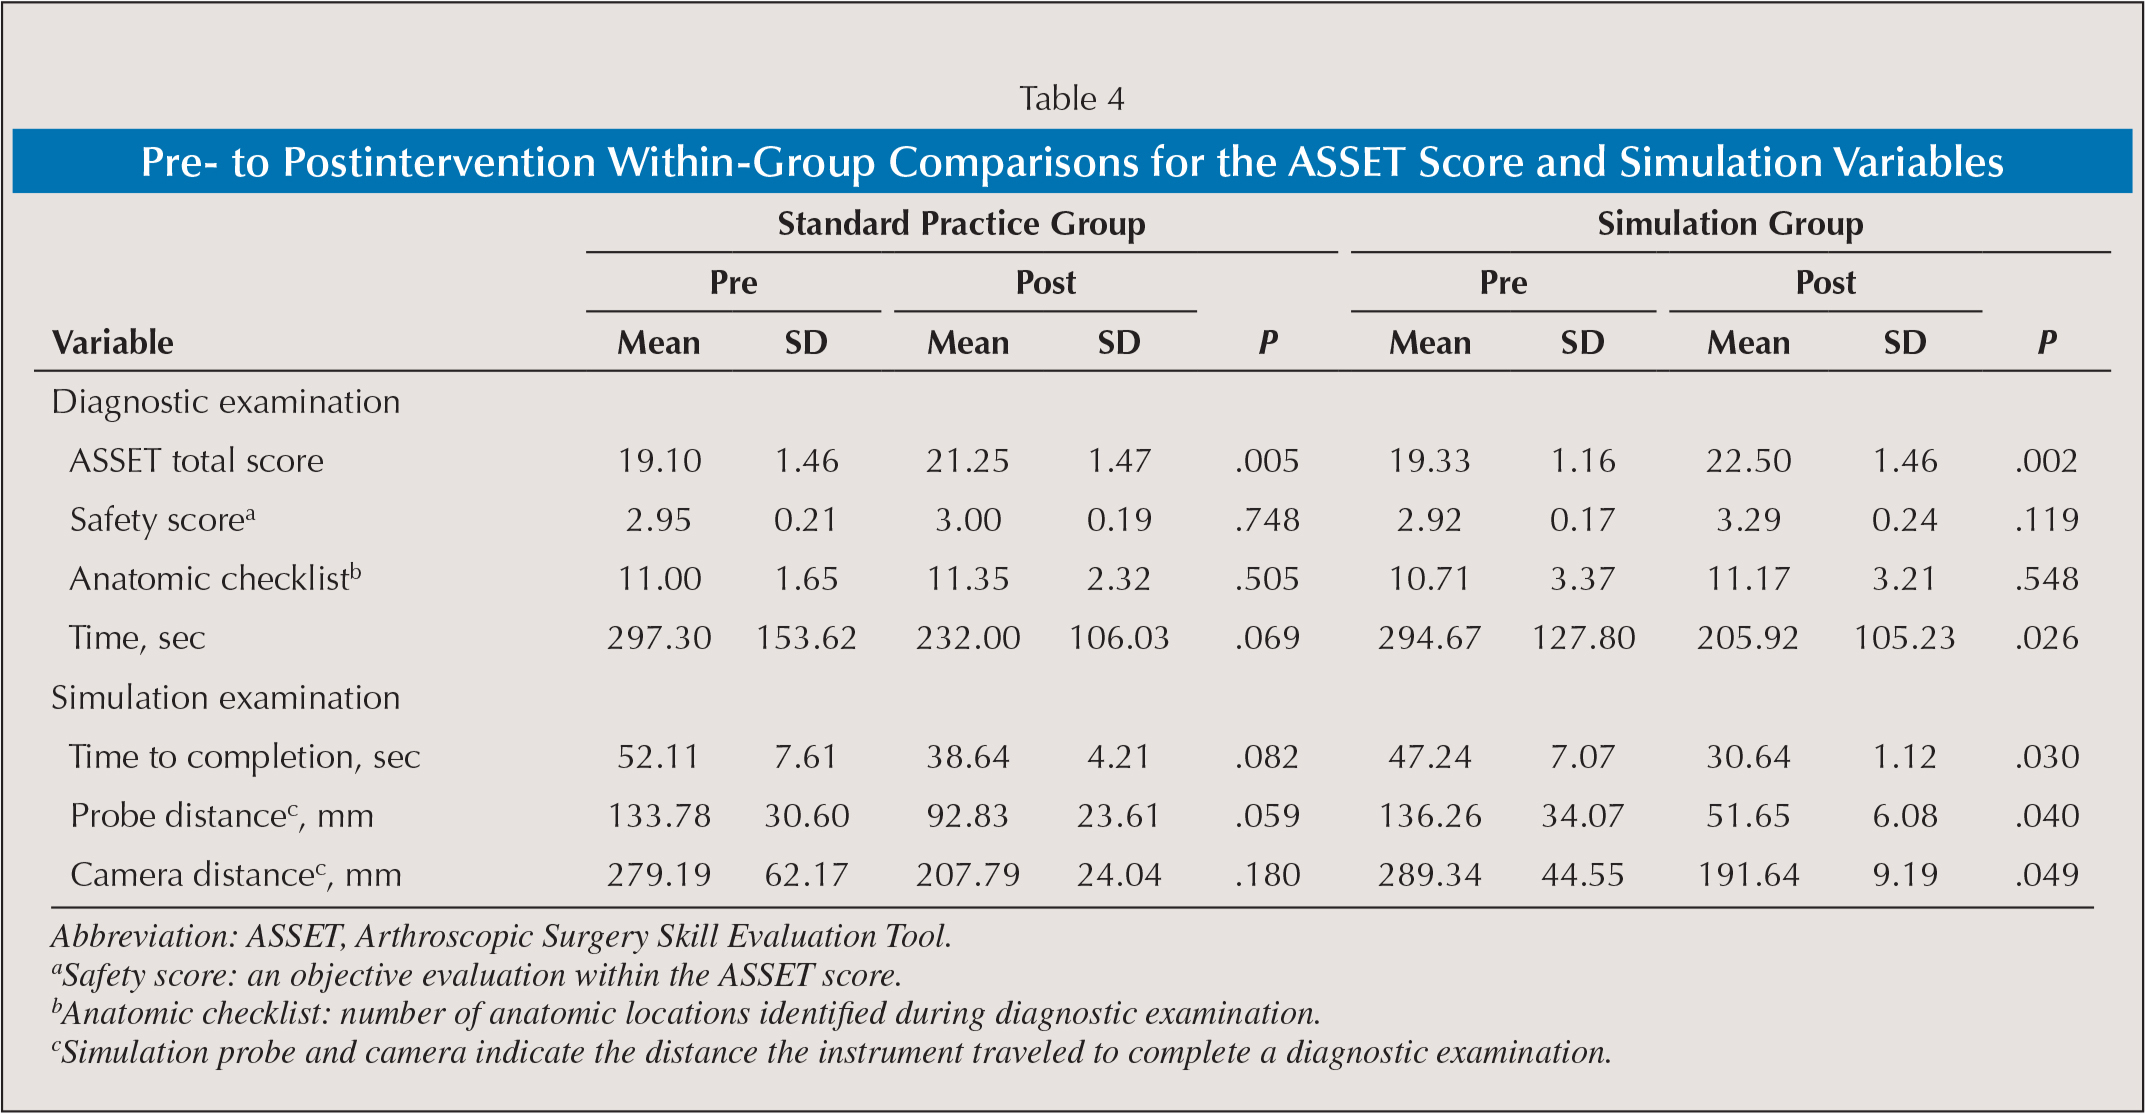 Pre- to Postintervention Within-Group Comparisons for the ASSET Score and Simulation Variables